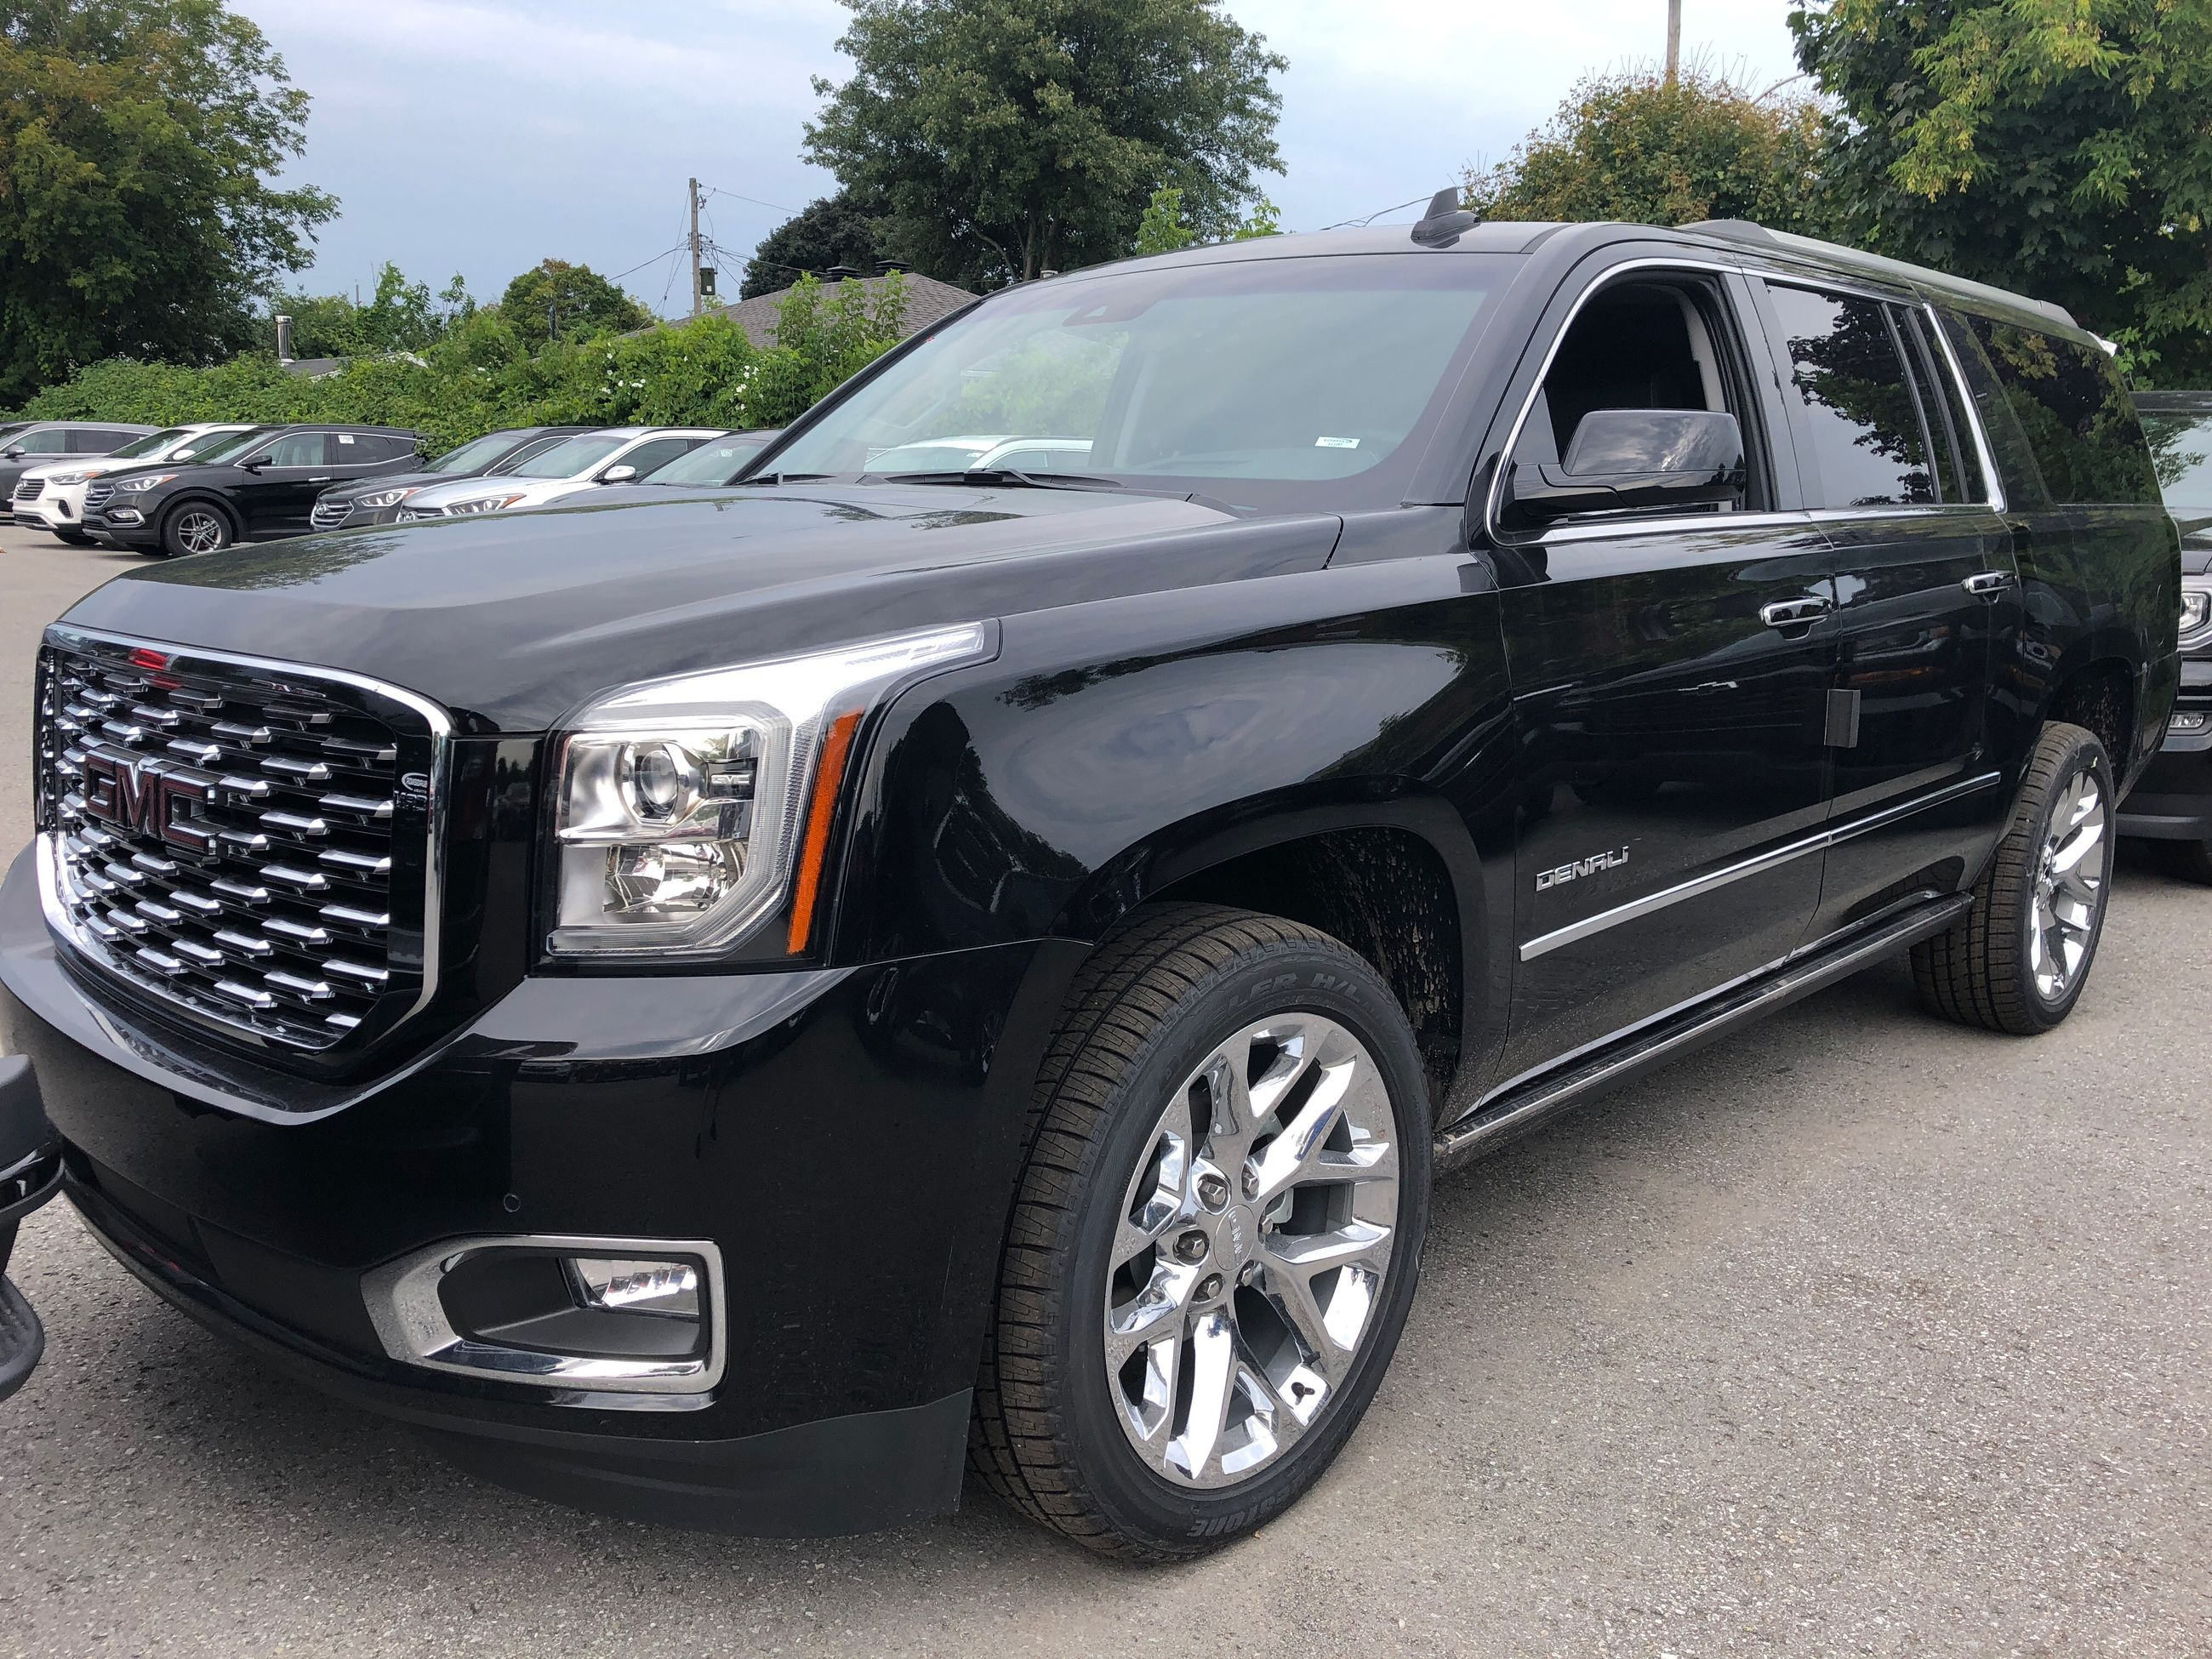 New 2019 GMC Yukon XL DENALI for Sale - $93739.0 ...